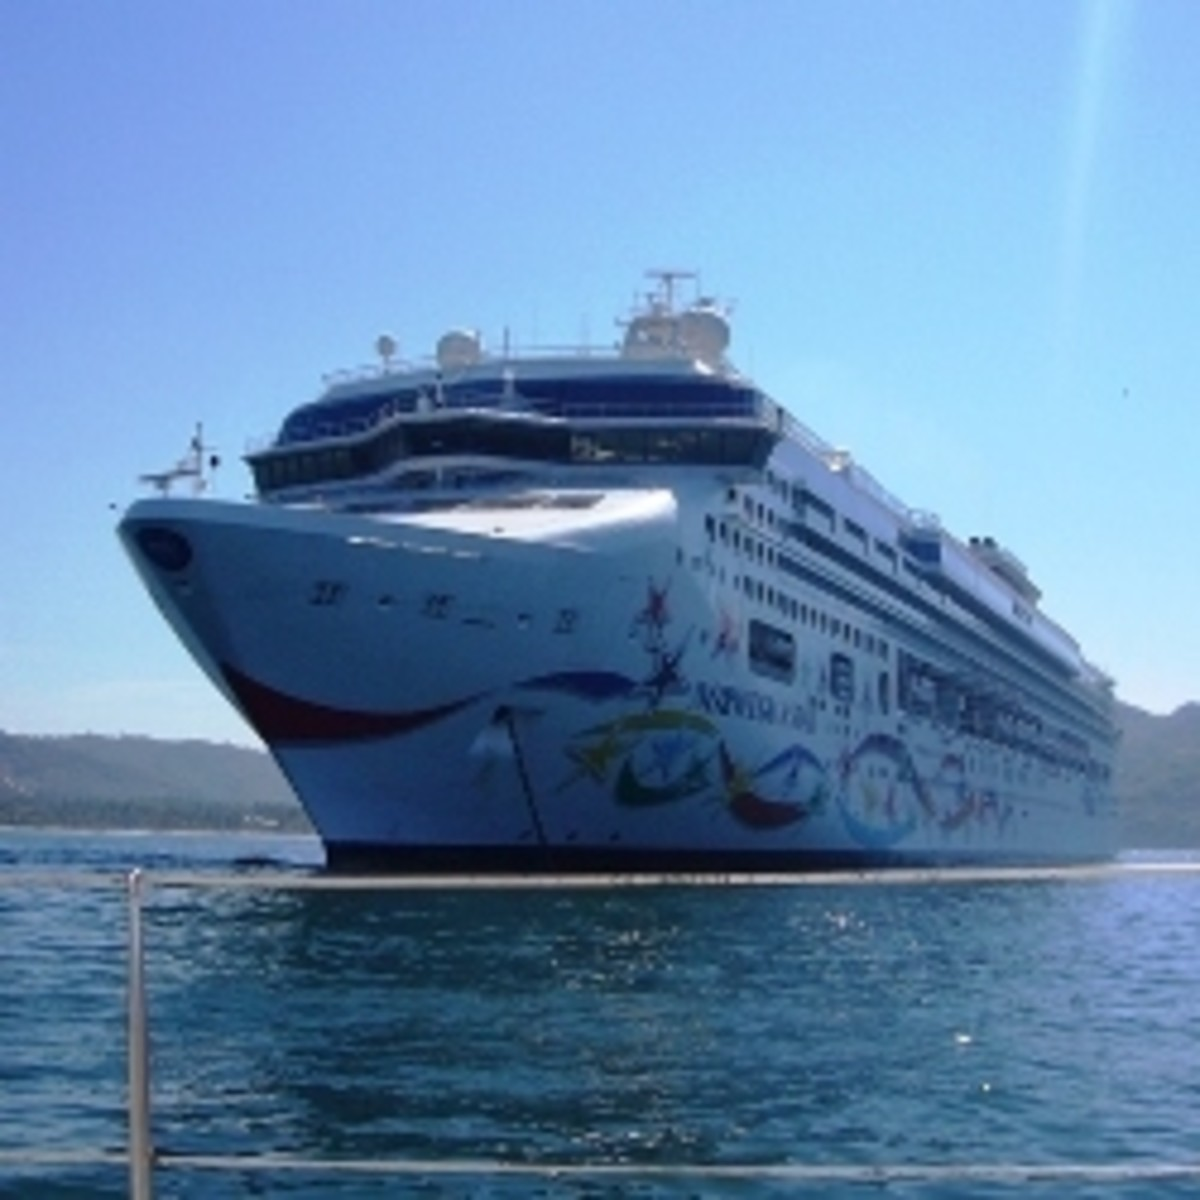 The NCL Star